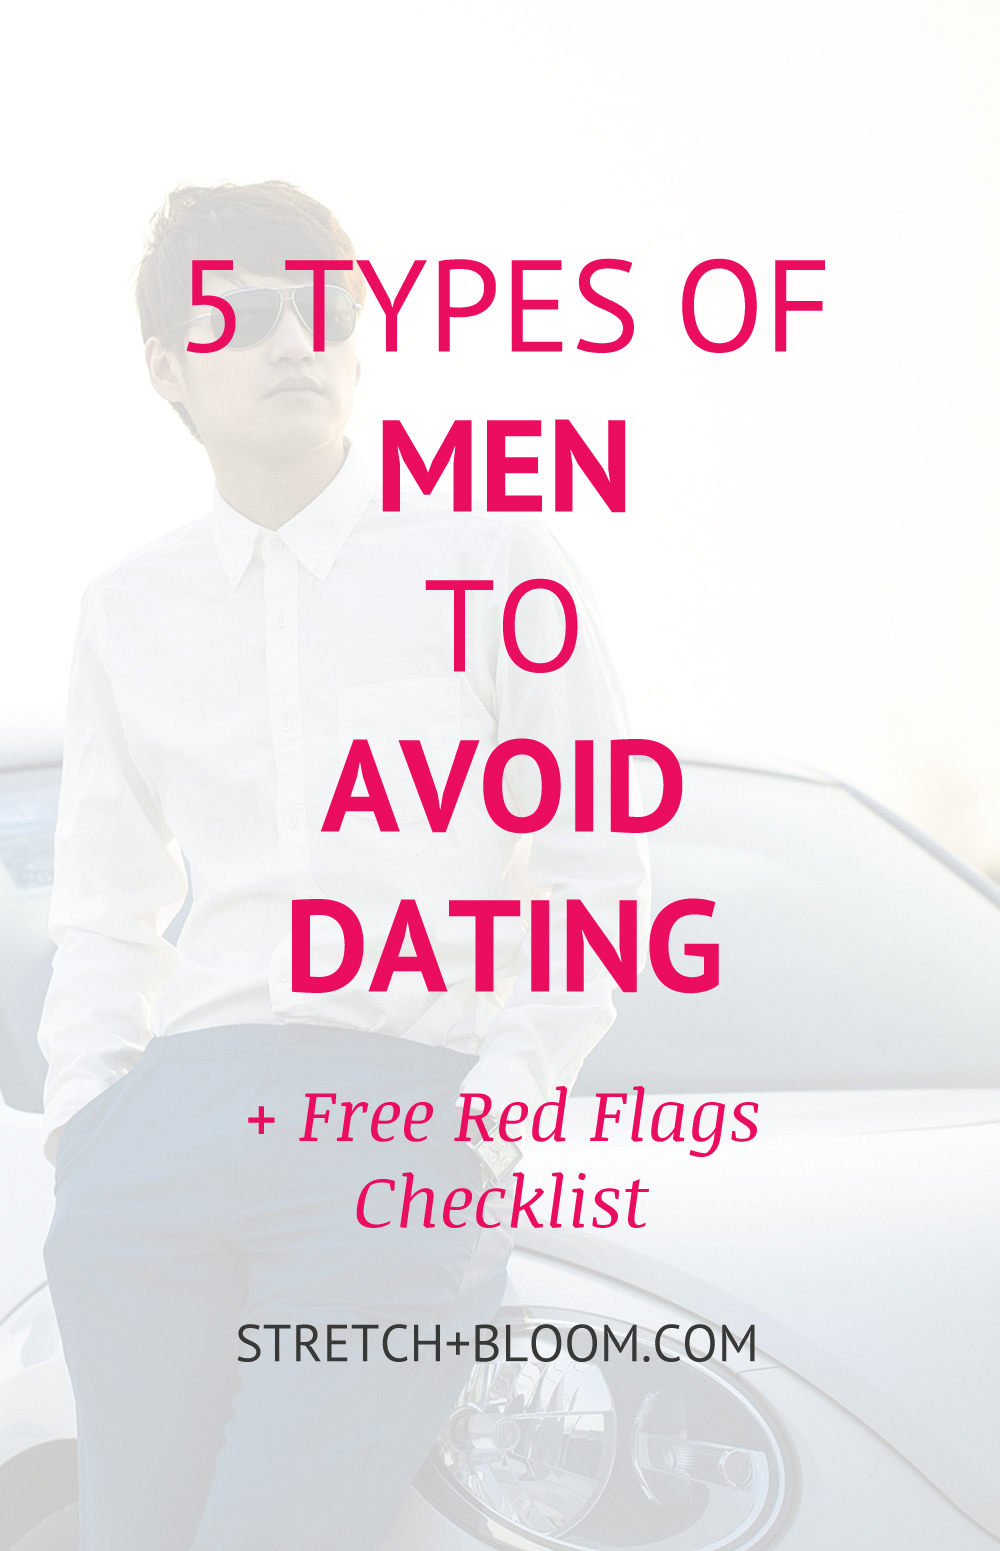 Online dating types to avoid